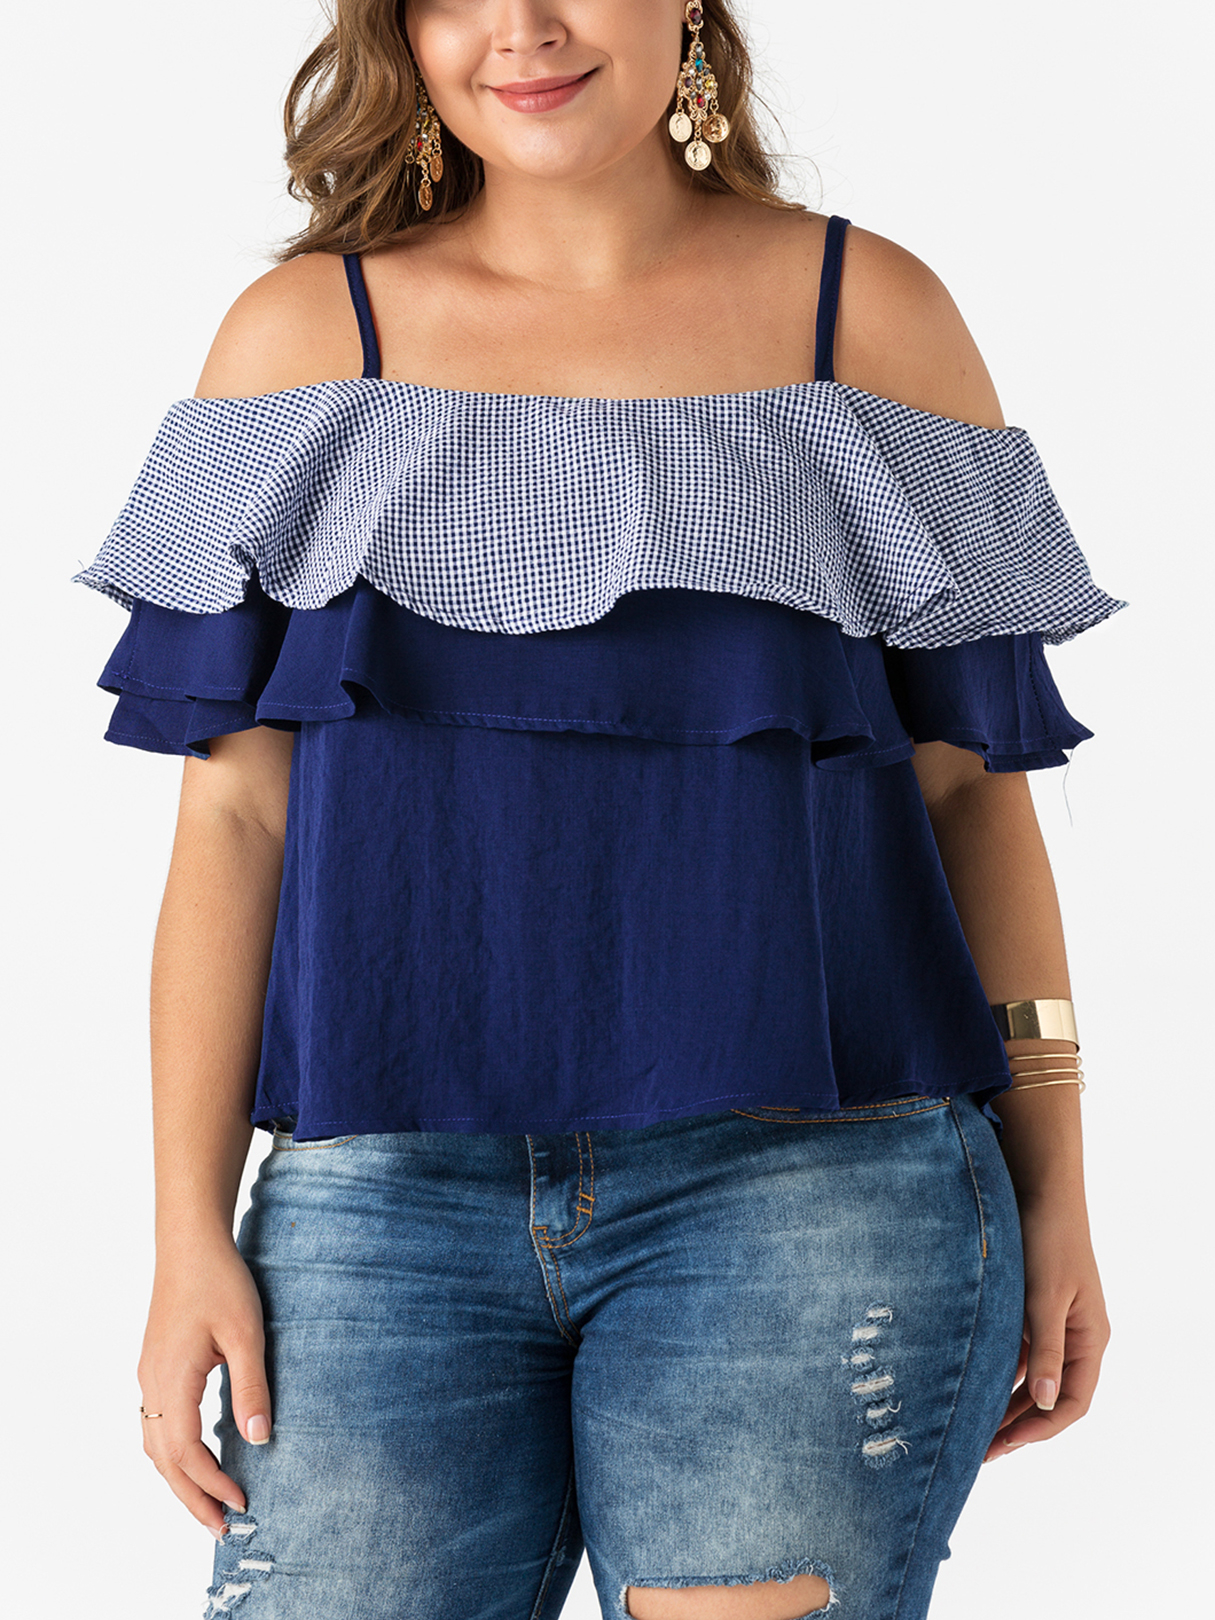 Dark Blue Layered Design Off The Shoulder Blouses flounce layered florals top with shorts